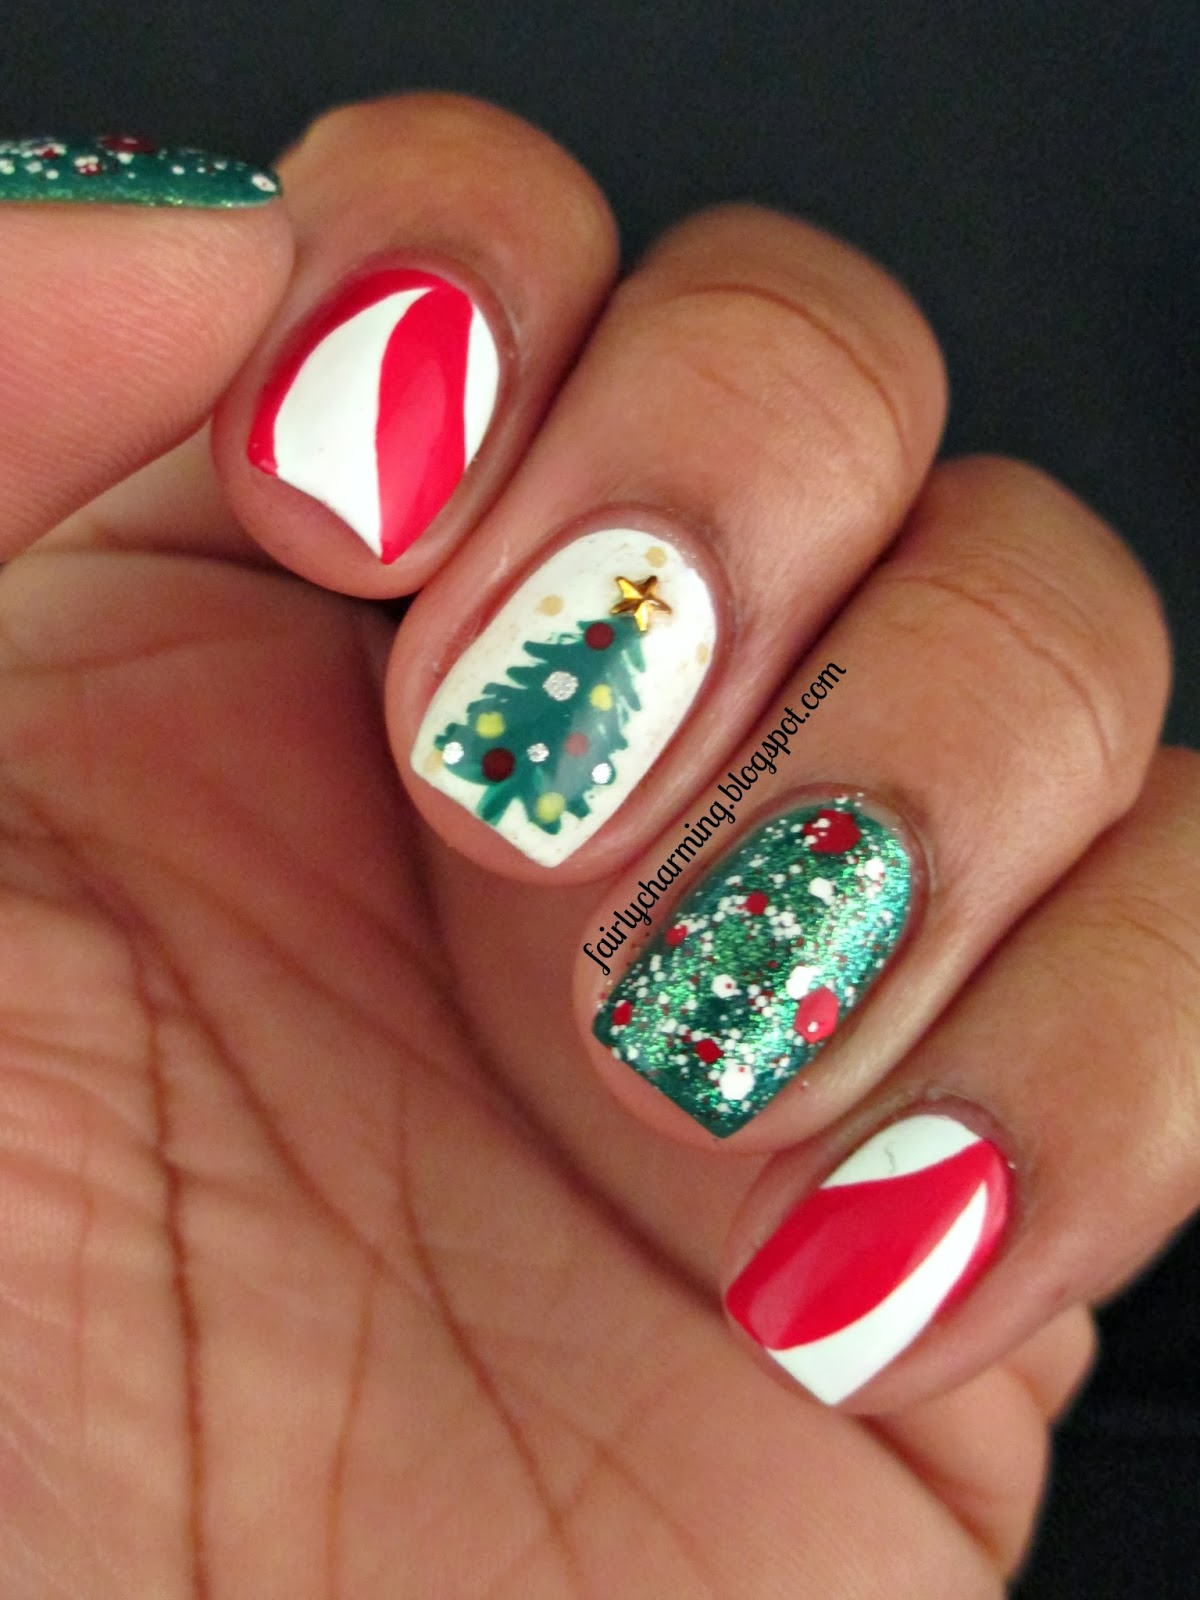 Fairly Charming: Peppermint Twists And A Tree... Oh My